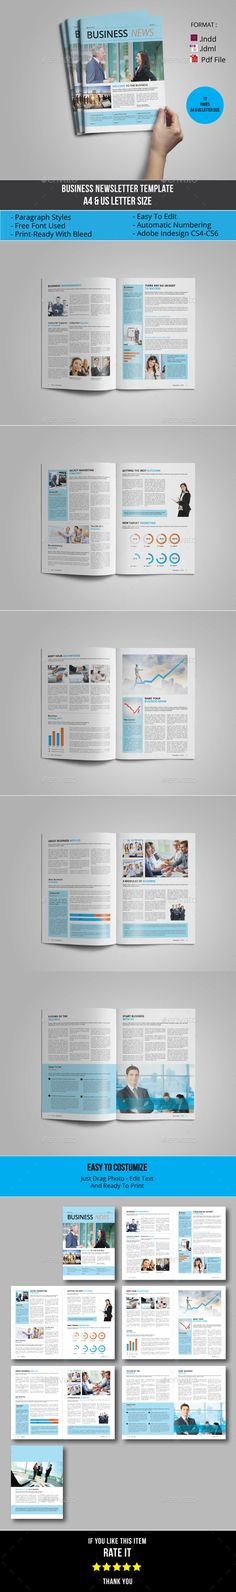 Multipurpose Business Newsletter Template - Newsletters Print Templates Download here : http://graphicriver.net/item/multipurpose-business-newsletter-template/16126900?s_rank=7&ref=Al-fatih